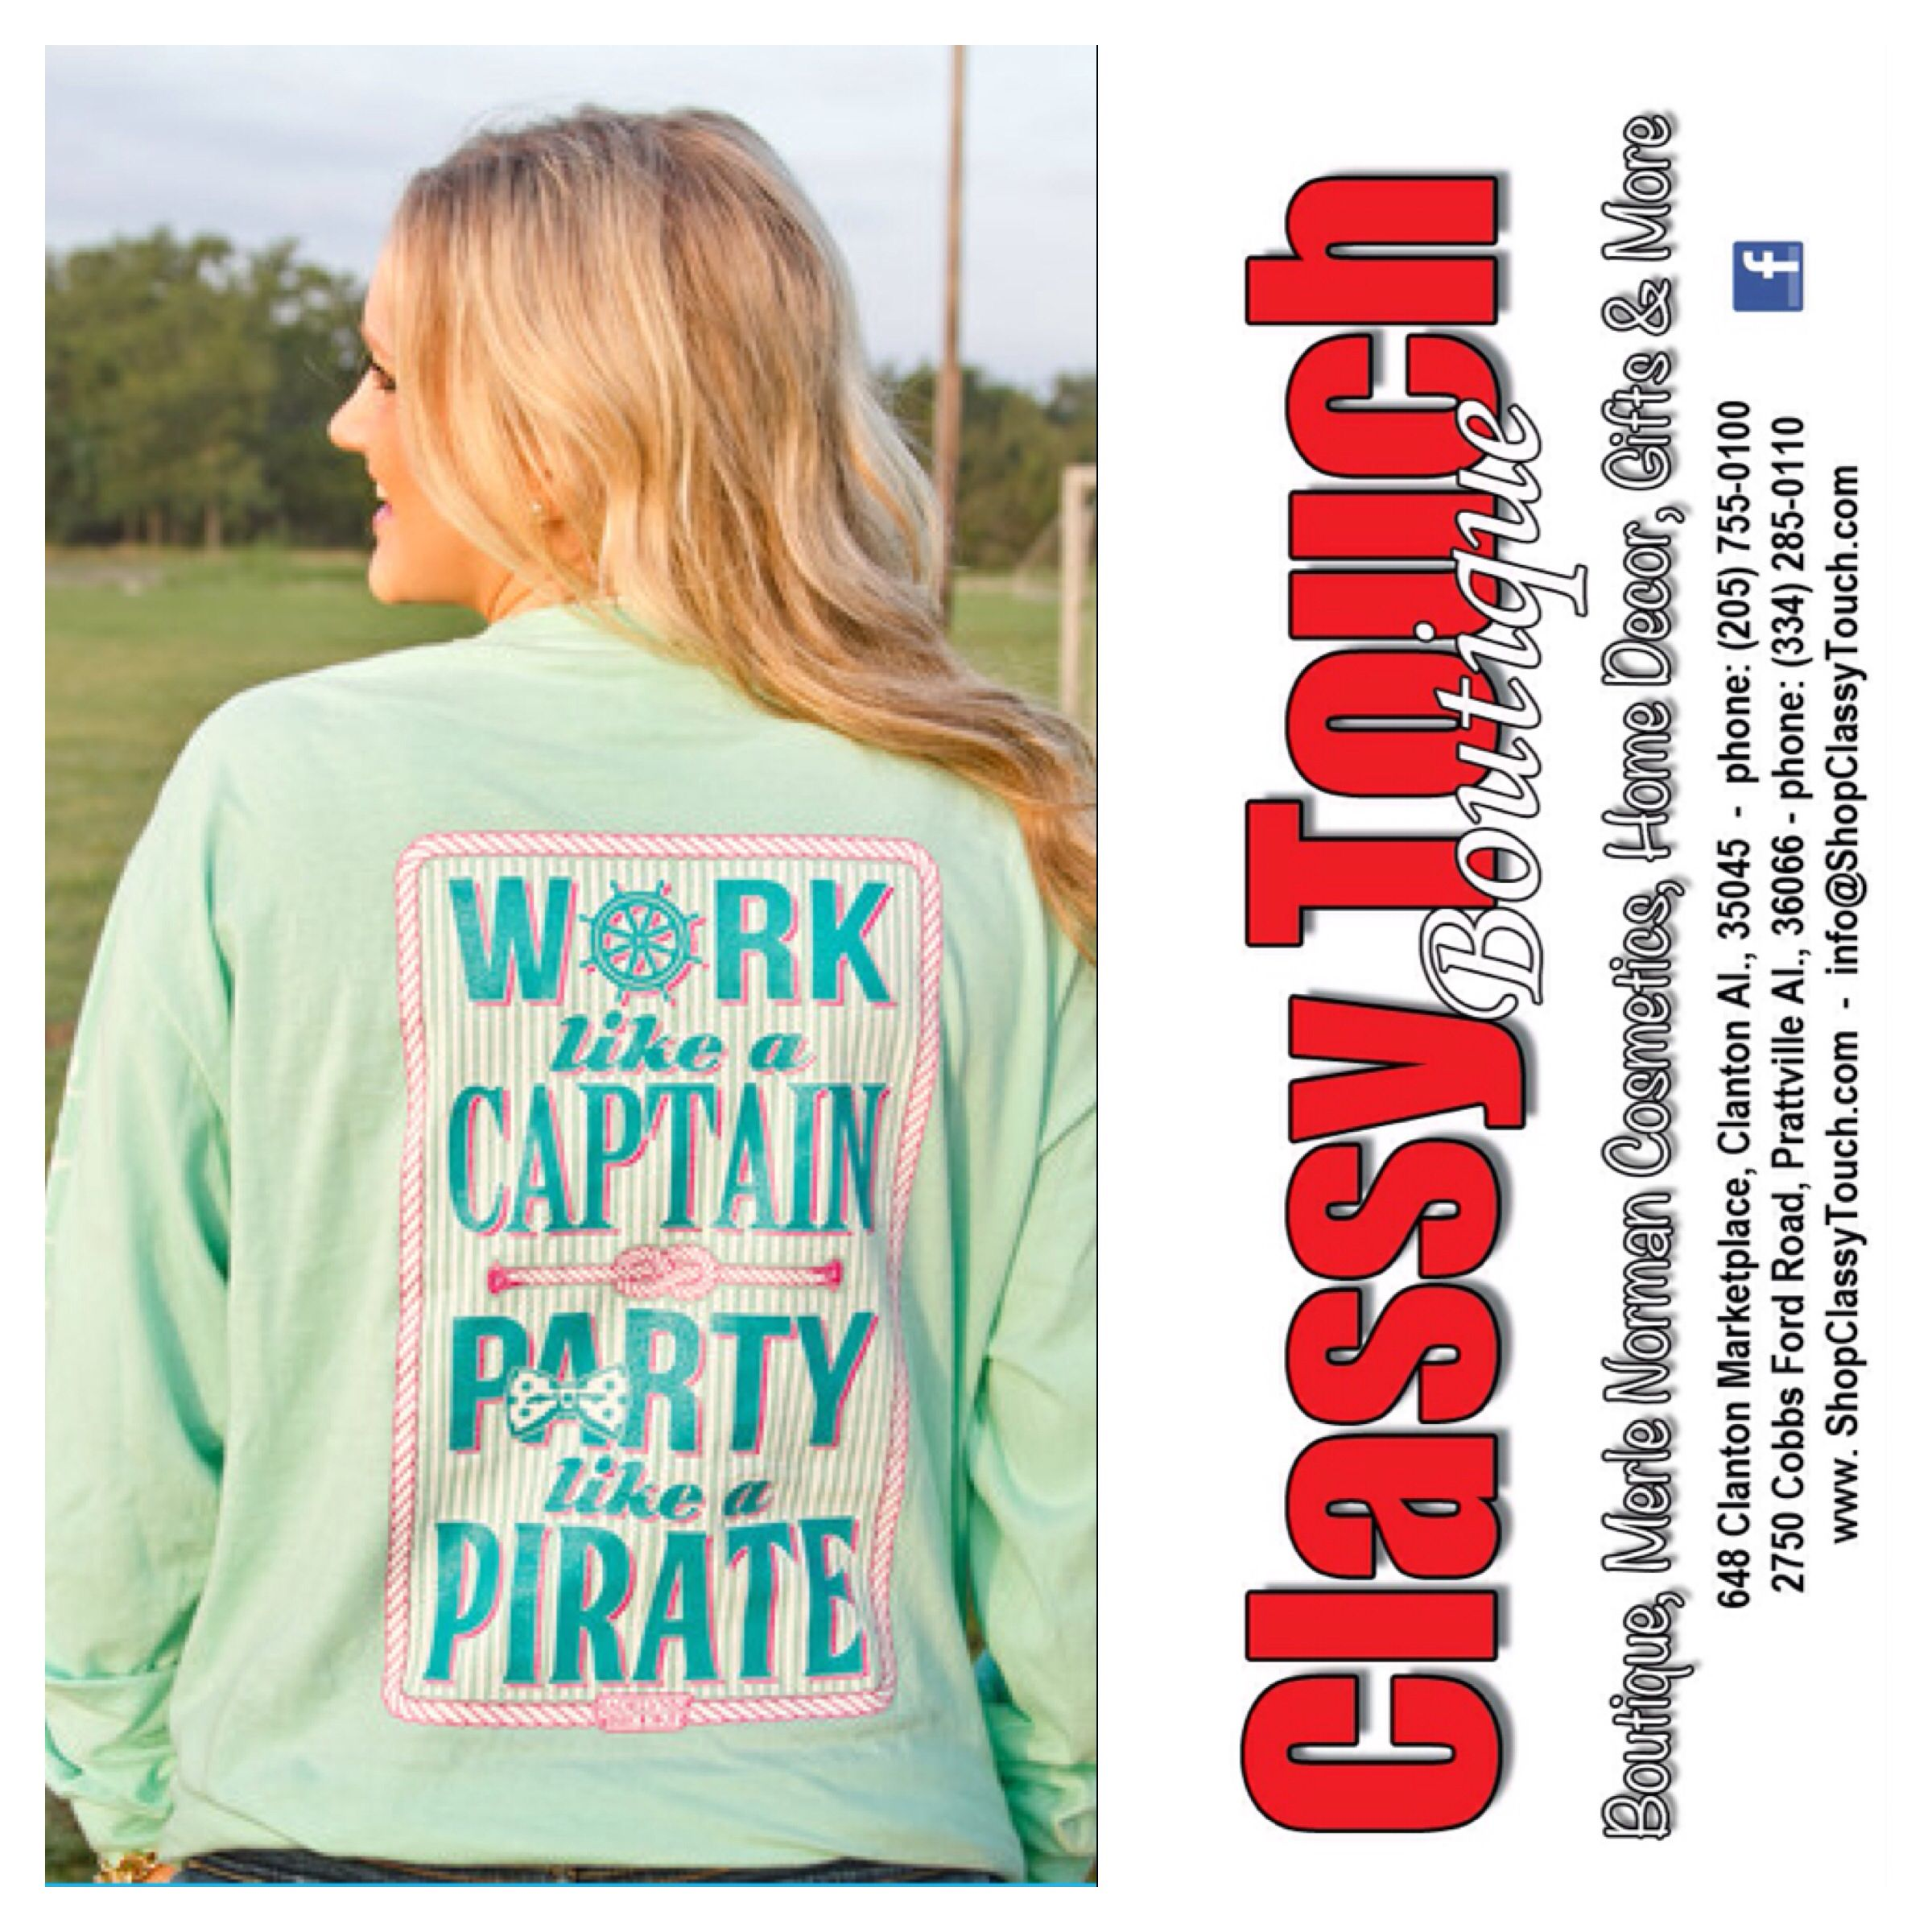 Work like a captain party like a pirate shopclassytouch boutique